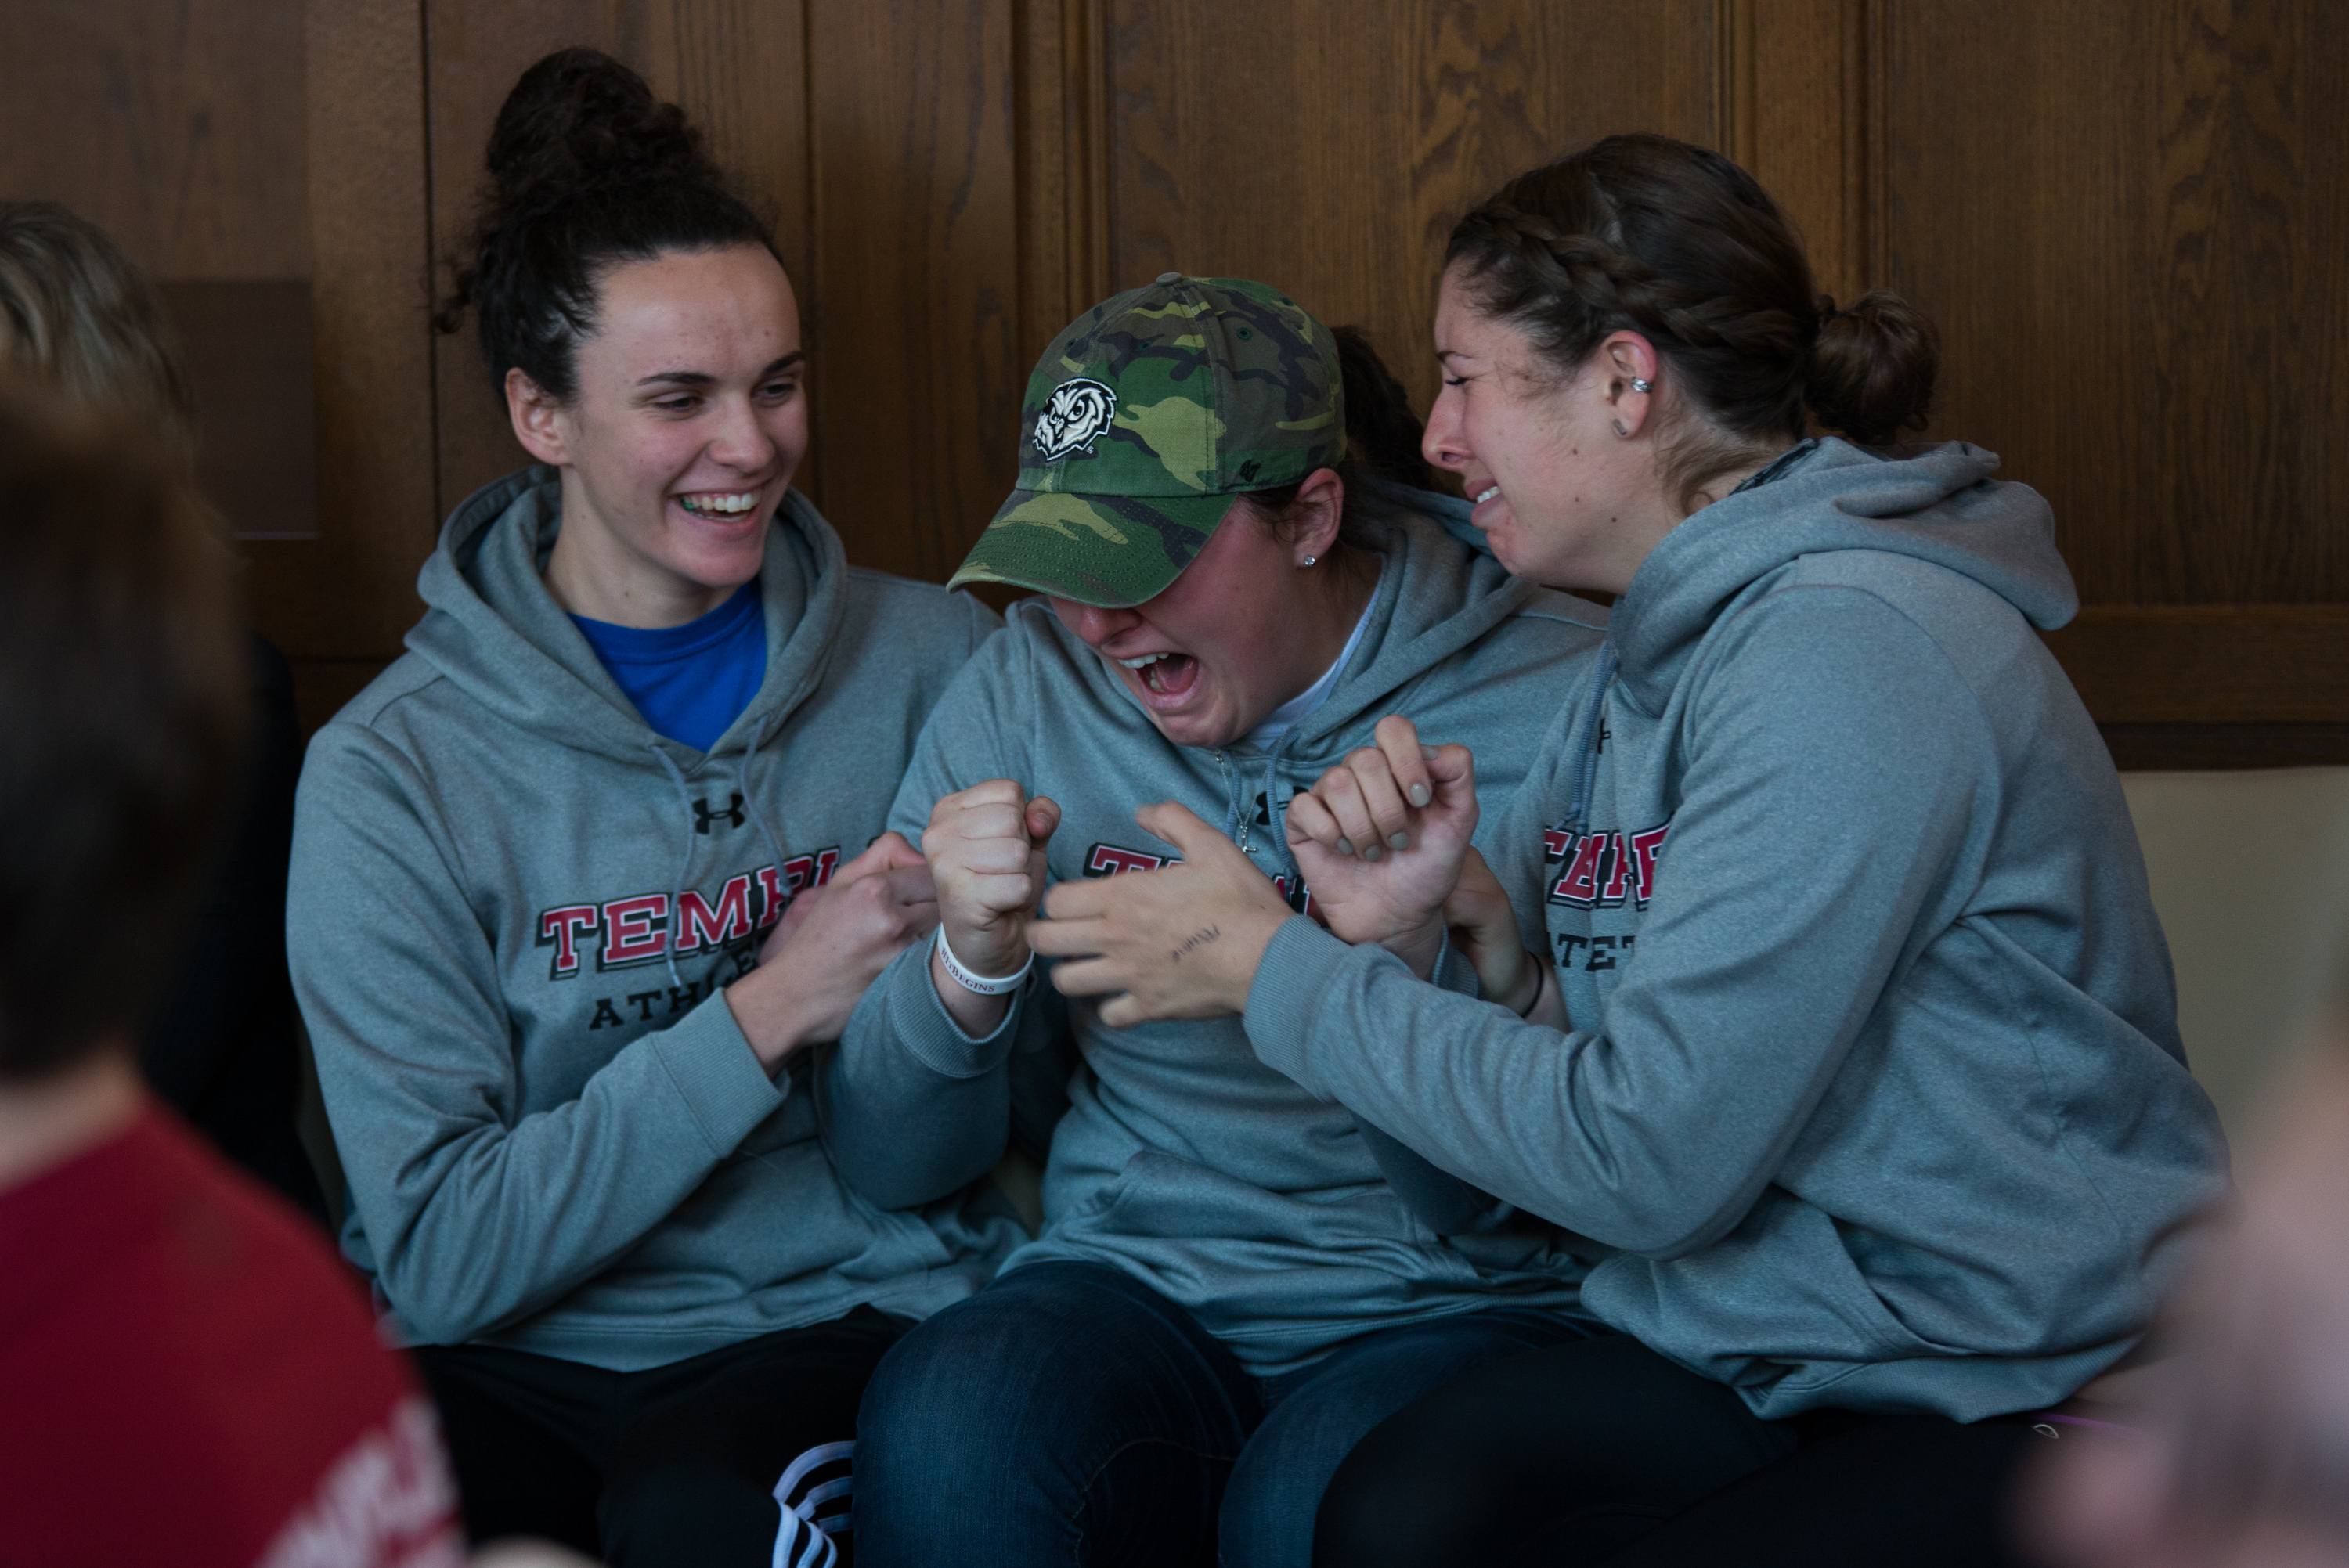 (From left) Rowers Layla Moran, Rachael Braccia and Kelly Hill react in excitement to the news that the men's crew and women's rowing teams will be reinstated. The programs were slated to be eliminated this summer before the Board of Trustees reversed its decision.